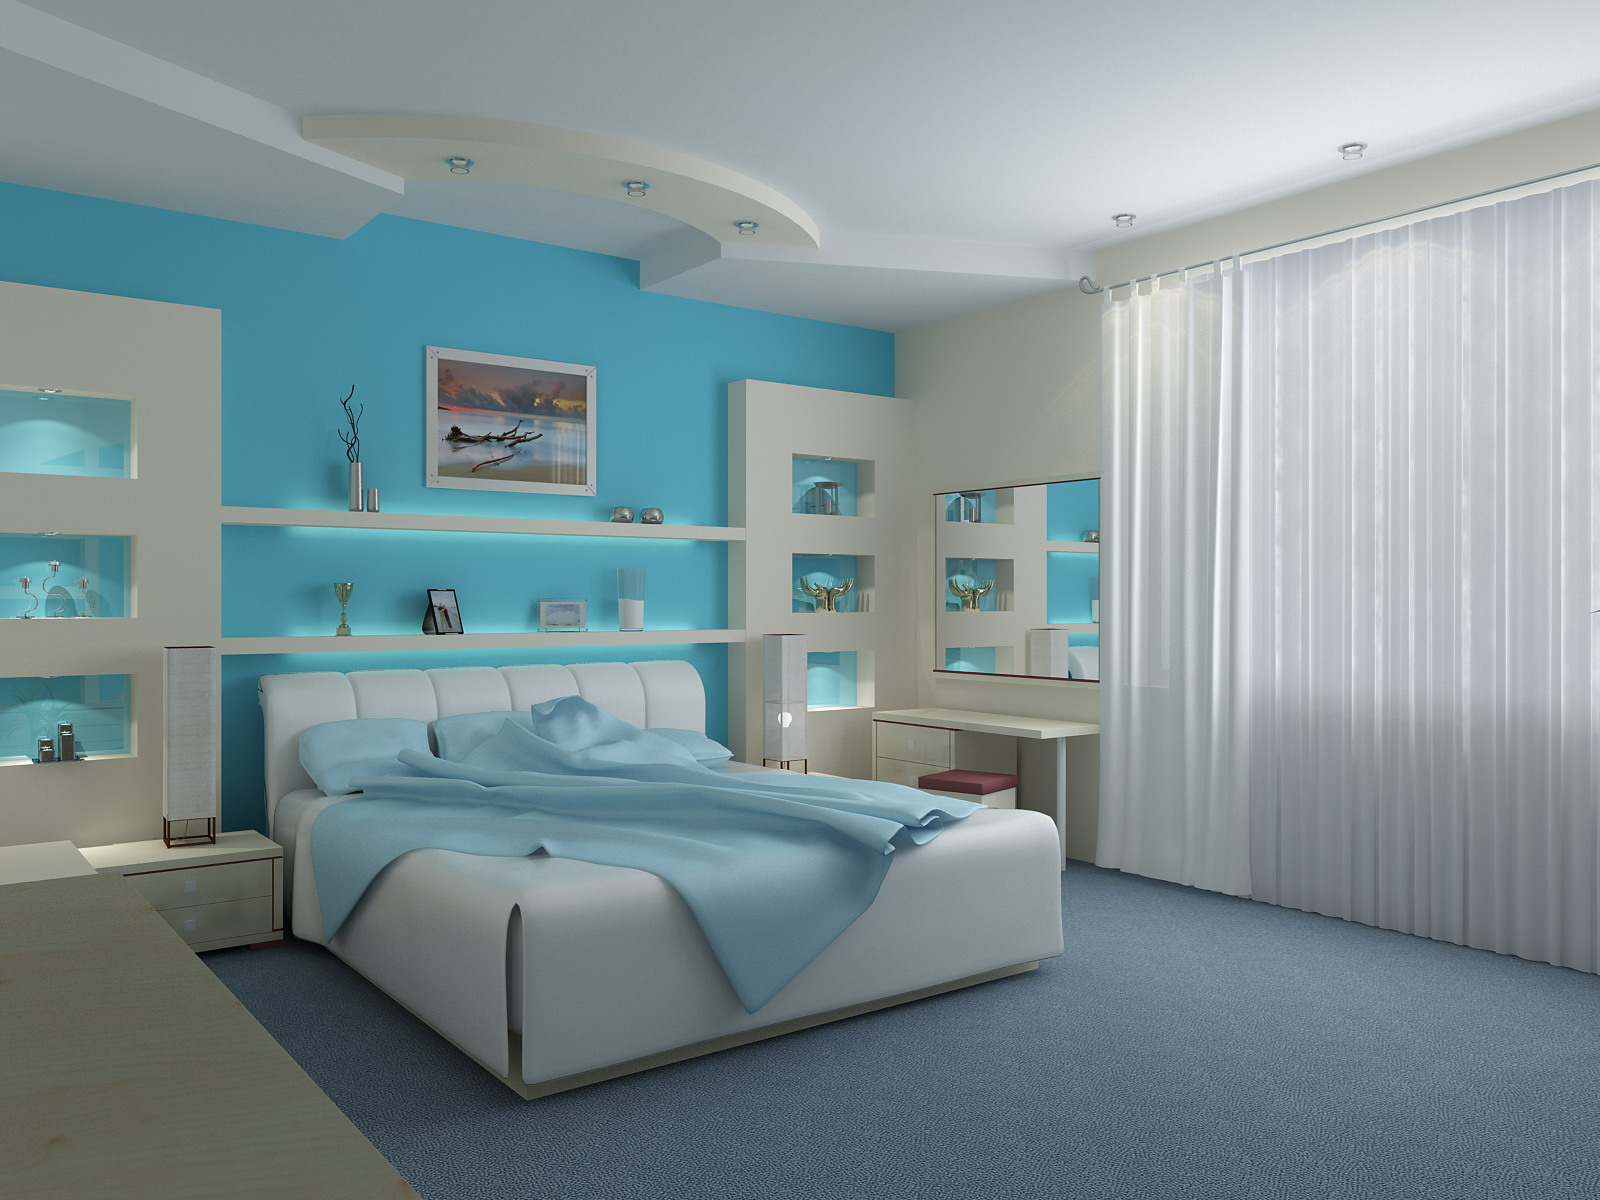 Decorar com azul 5